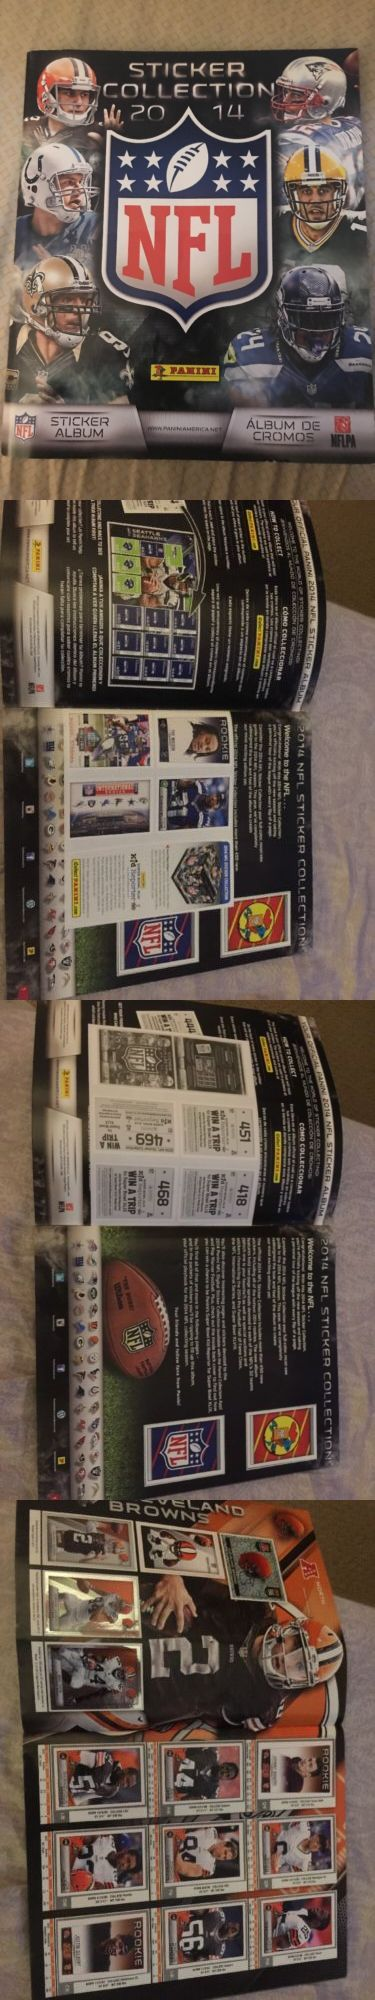 Sports Stickers Sets and Albums 141755: Panini Album Nfl 2014 Complete 485 Card Album - With Insert Cards Still In Album -> BUY IT NOW ONLY: $50 on eBay!